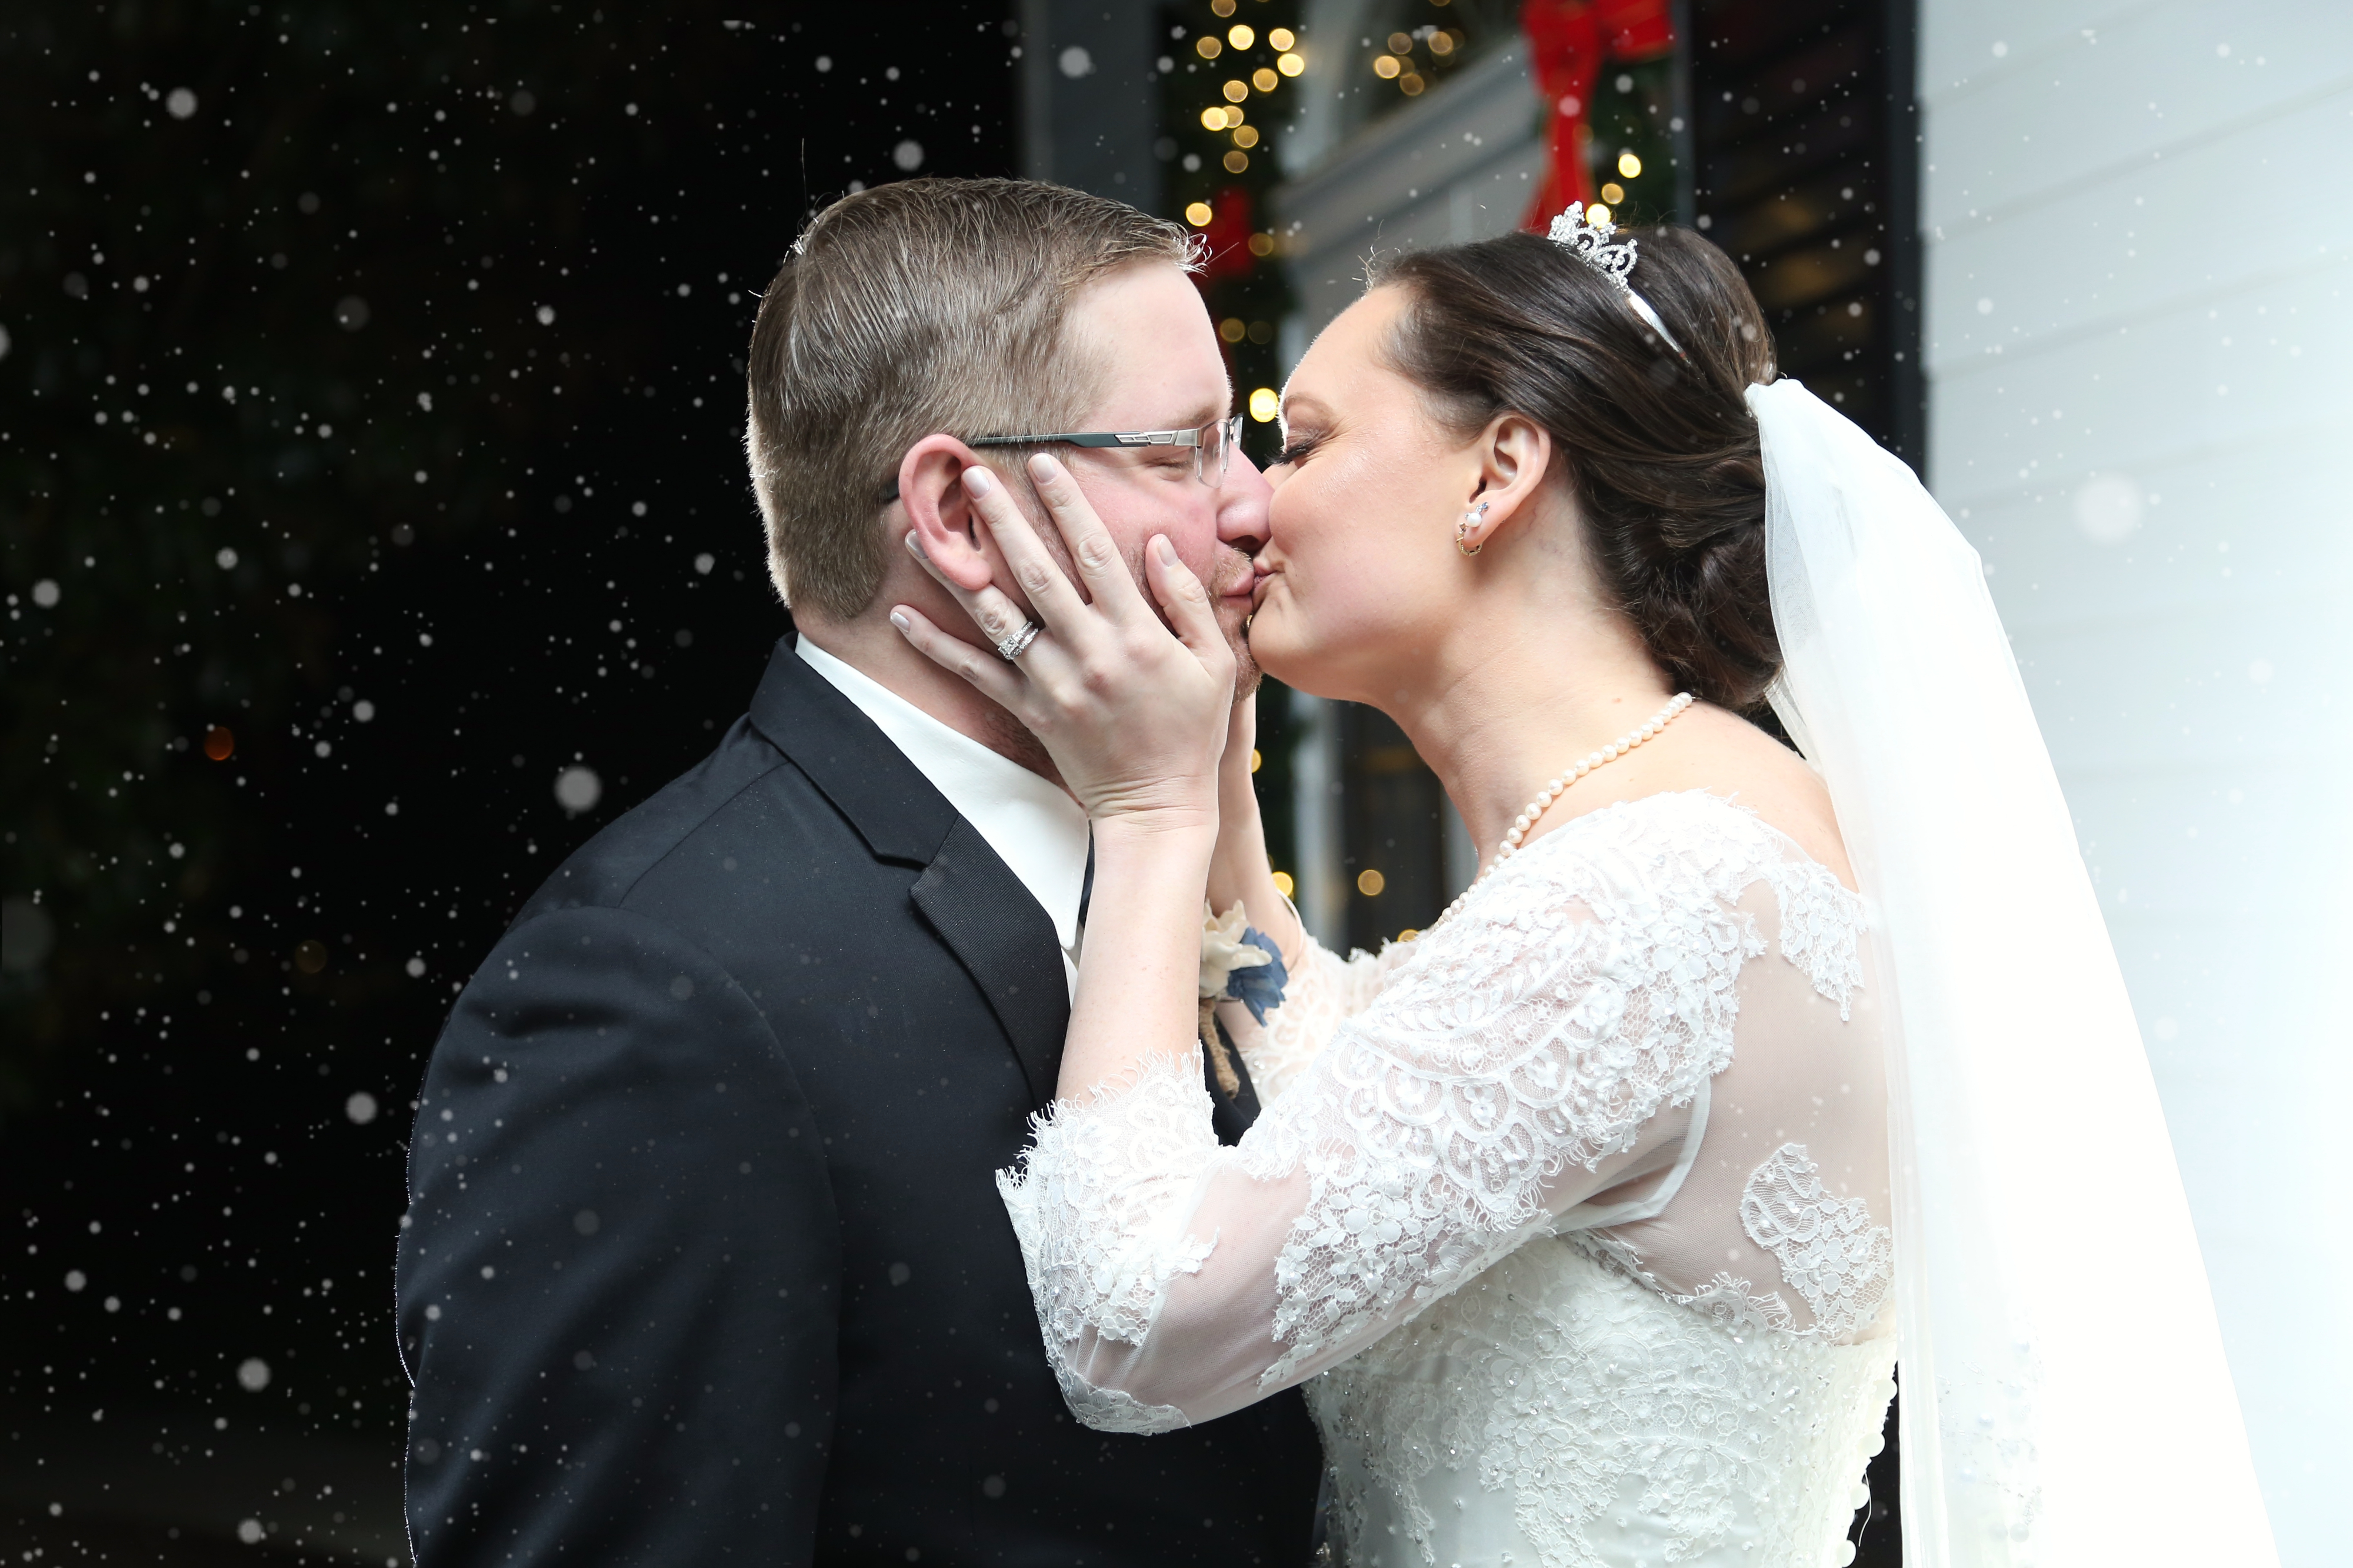 the bride and groom kissing at the carriage house